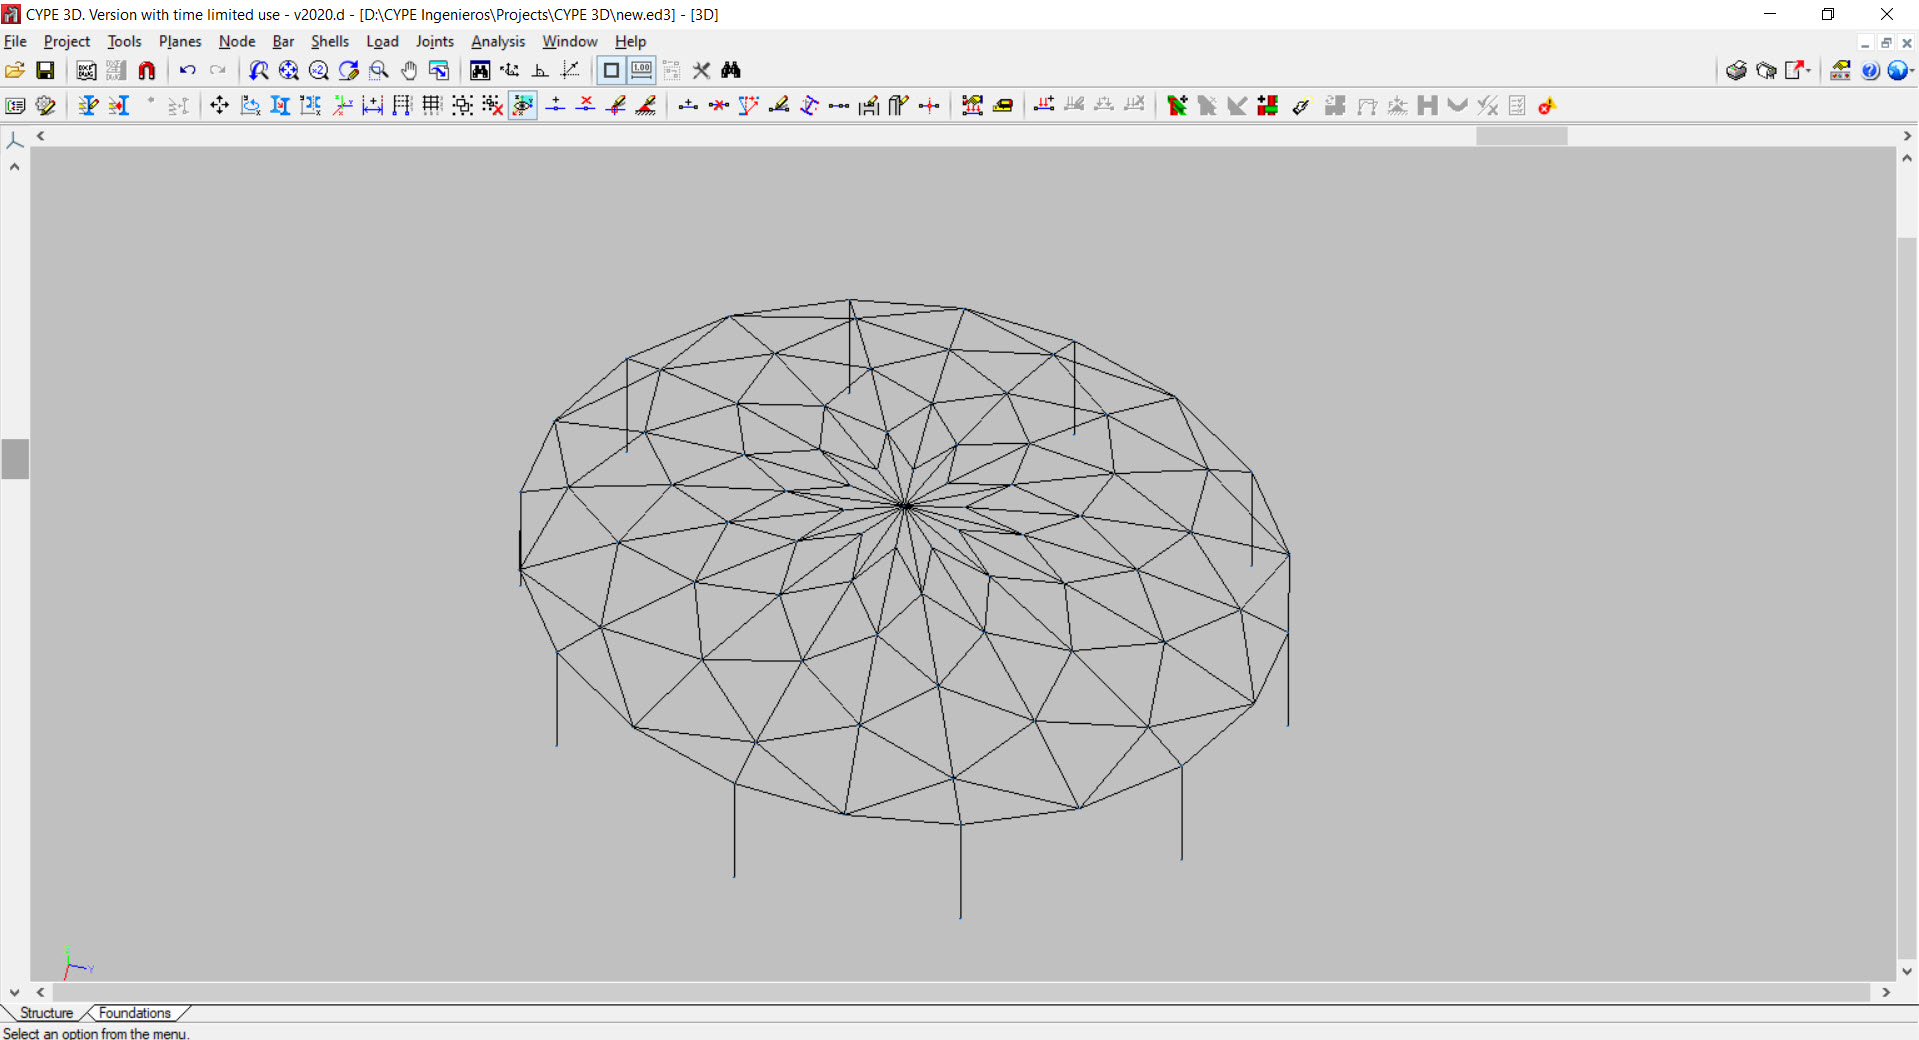 Import DXF DWG files to Cype3D